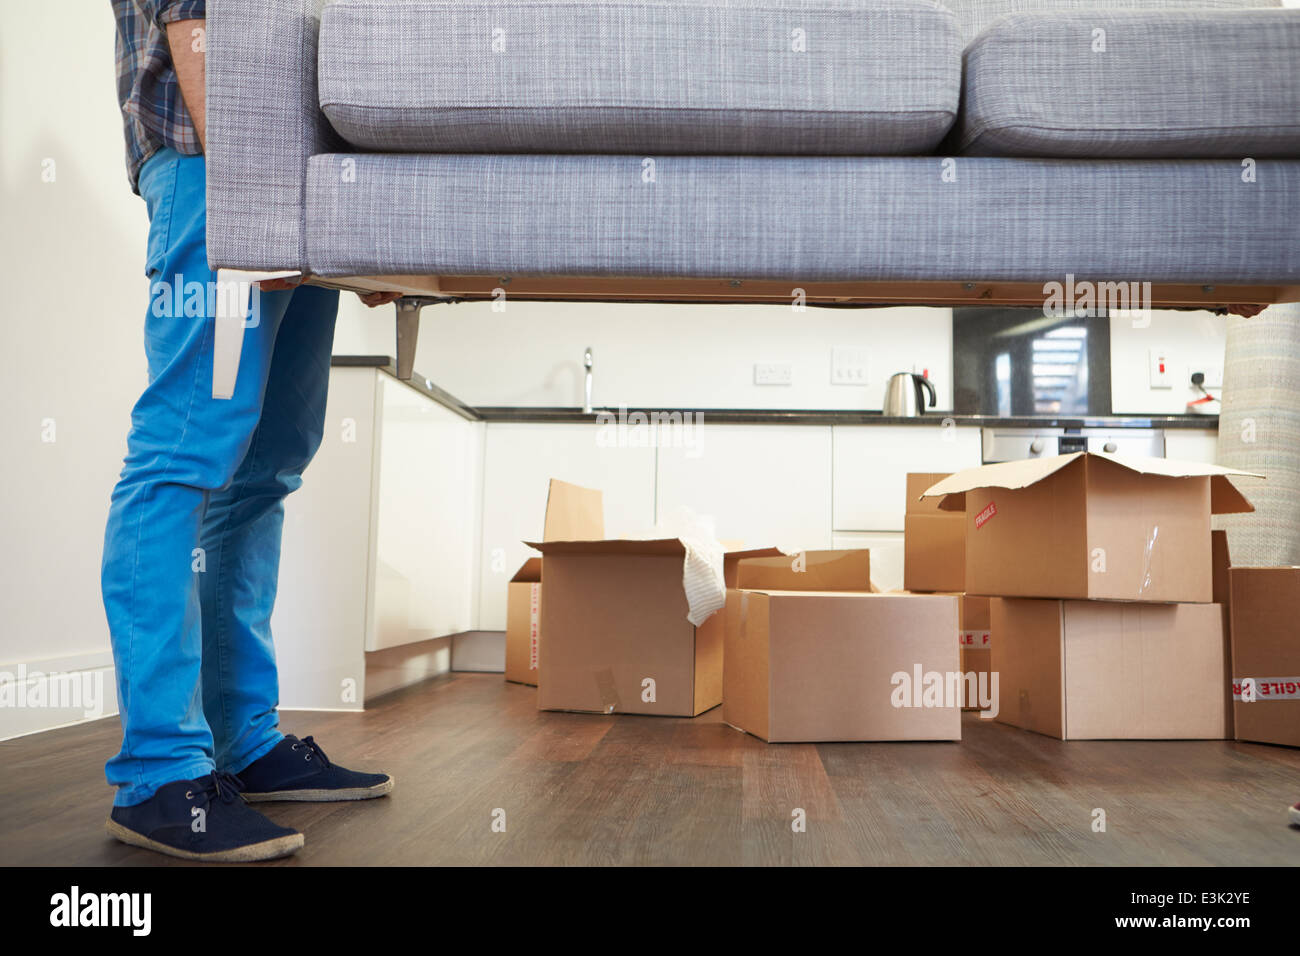 Close Up Of Man Carrying Sofa As He Moves Into New Home - Stock Image